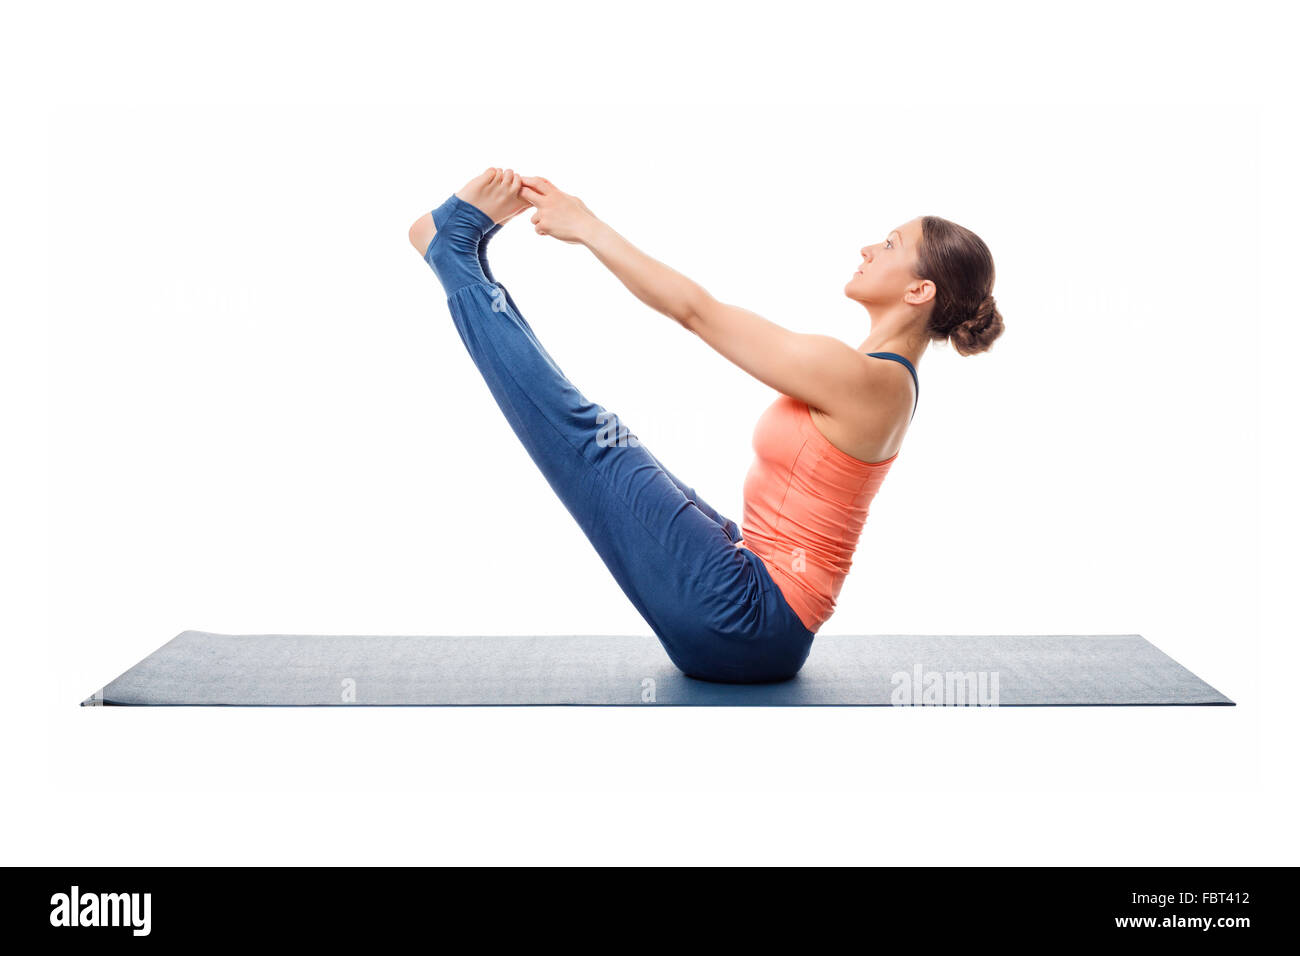 Beautiful sporty fit woman practices yoga asana - Stock Image